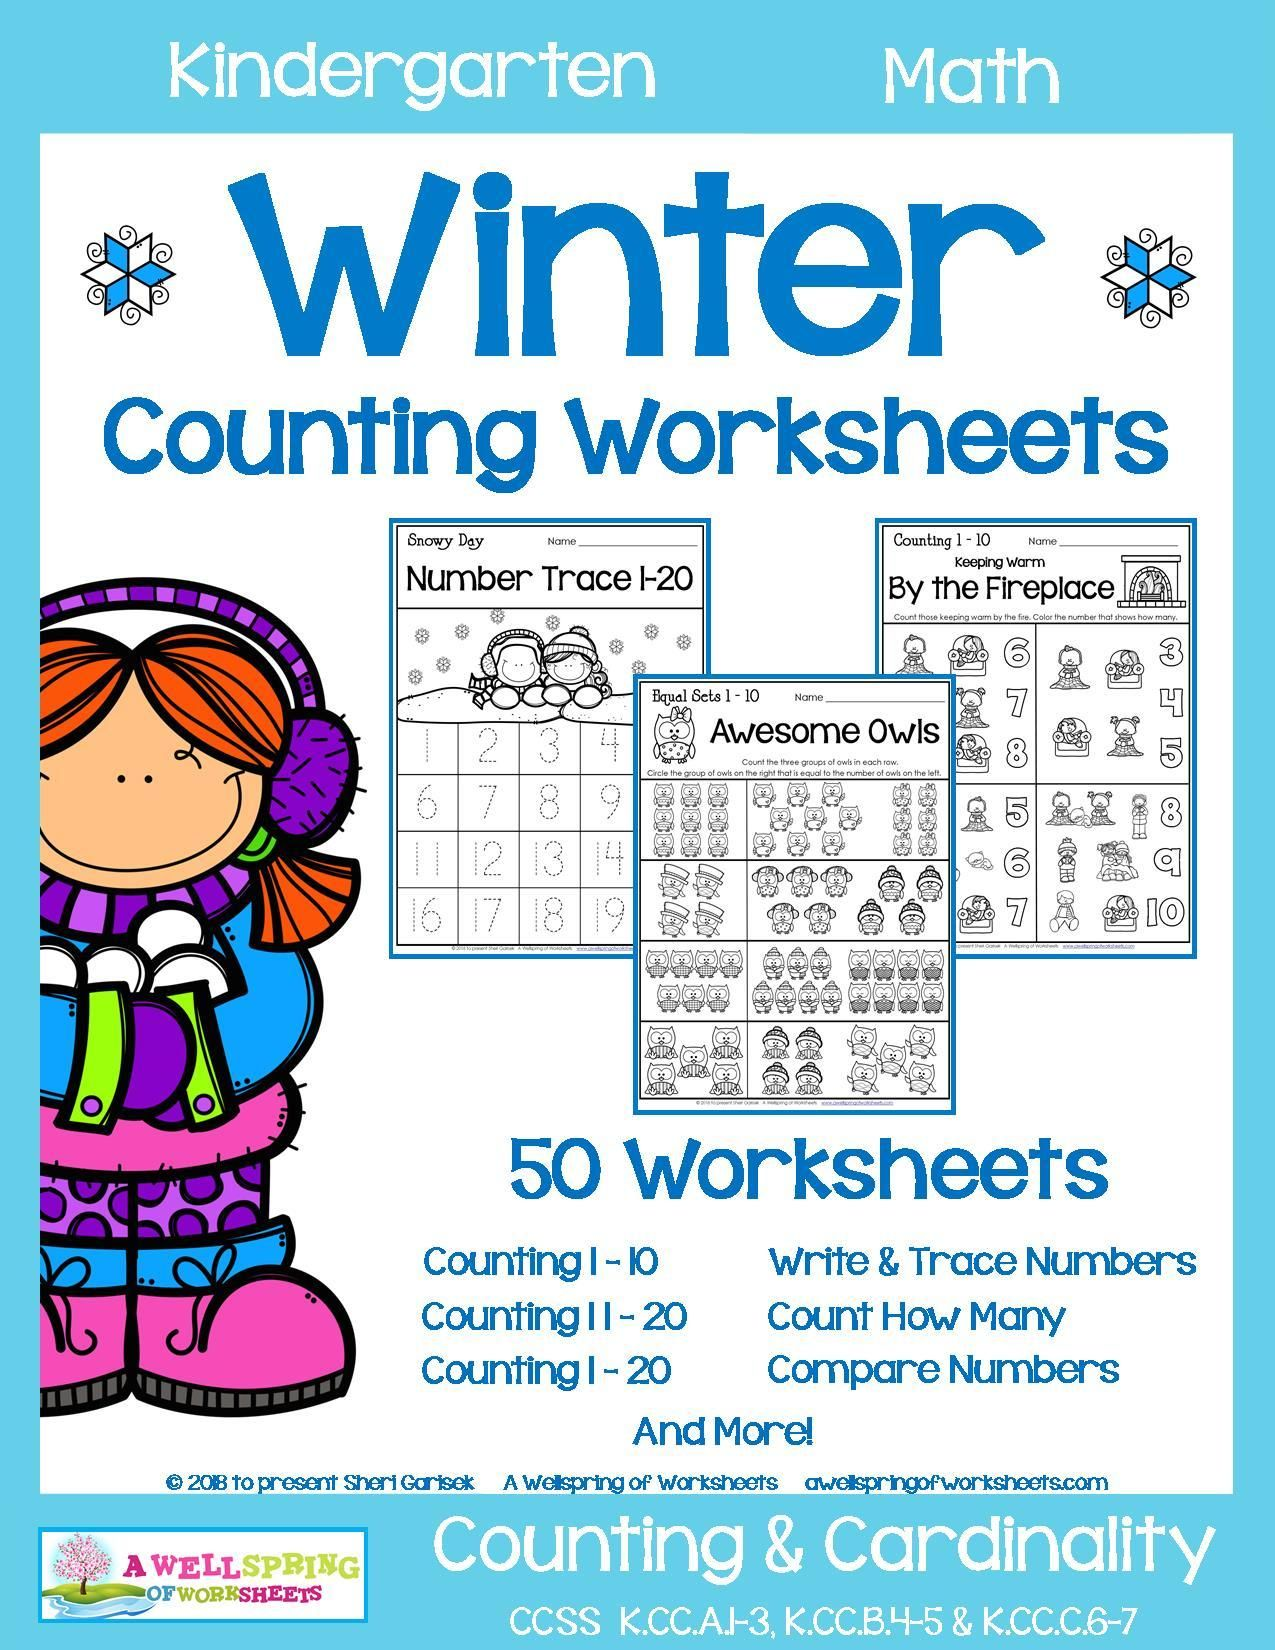 Winter Counting Worksheets For Kindergarten This Set Contains 50 Fun And Engag Counting Kindergarten Counting Worksheets Counting Worksheets For Kindergarten [ 1650 x 1275 Pixel ]